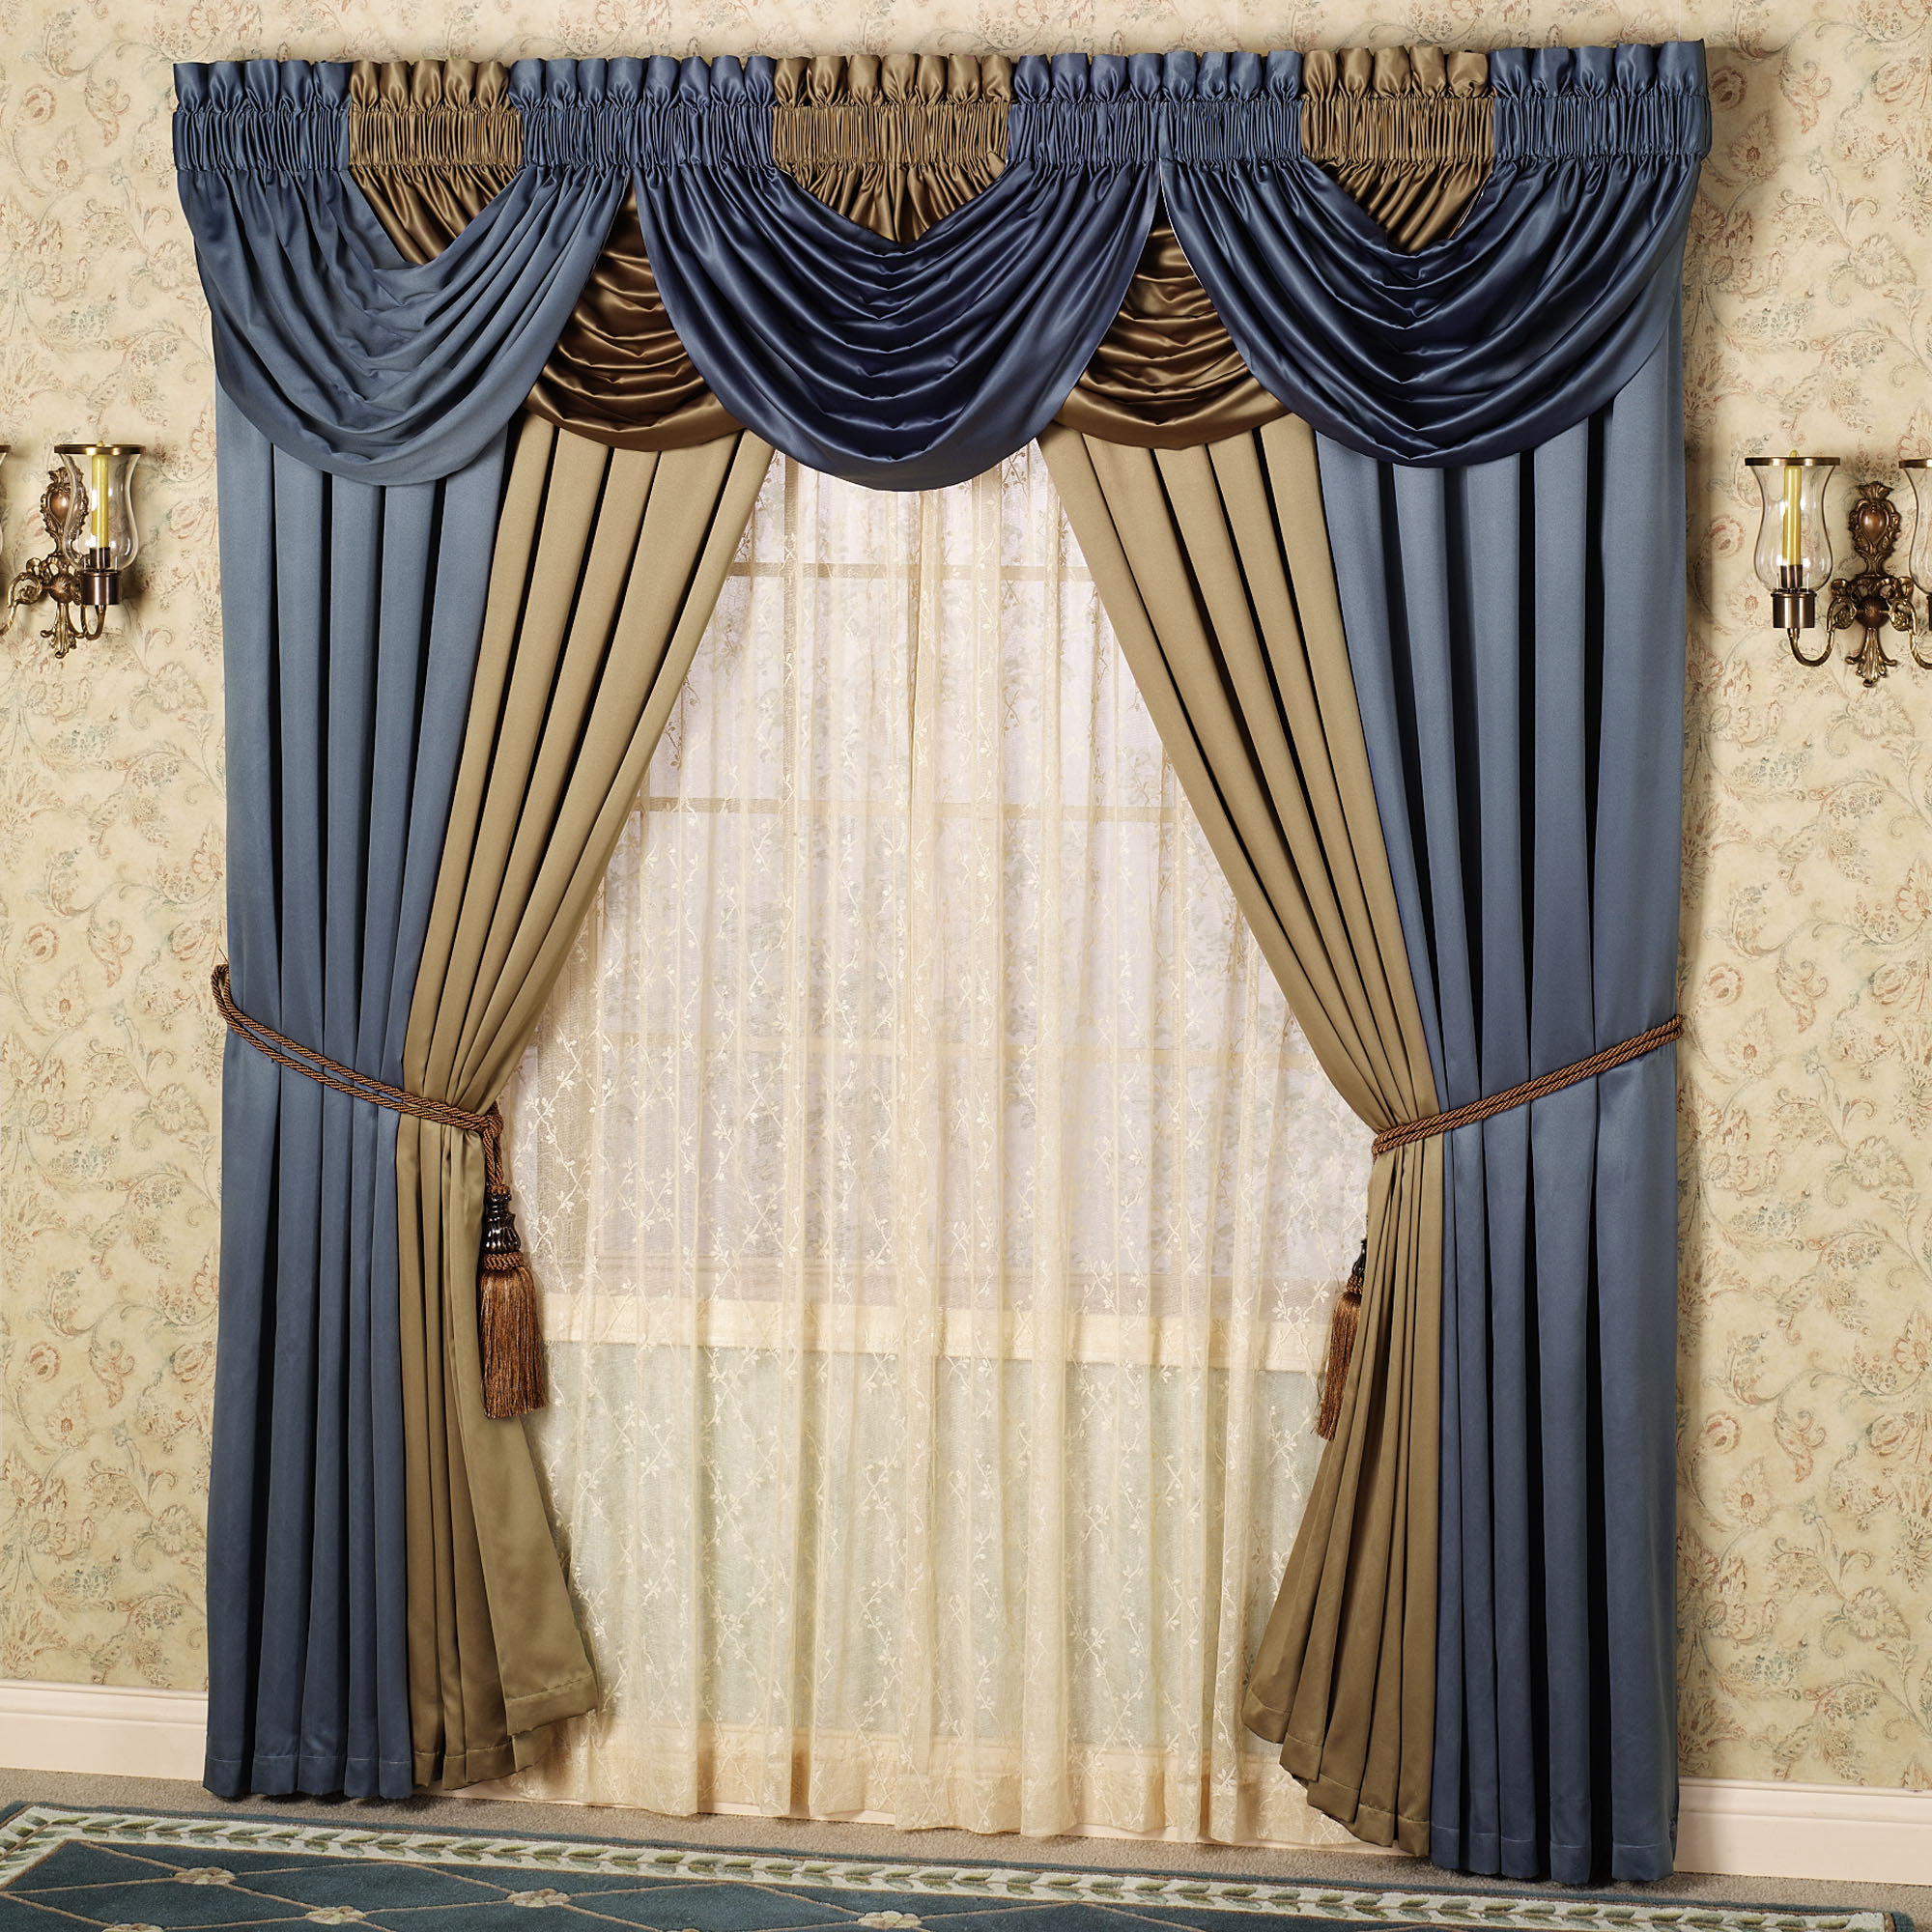 trim zig pocket valances designs gray window large valance carousel and with navy rod zag elephants white accent